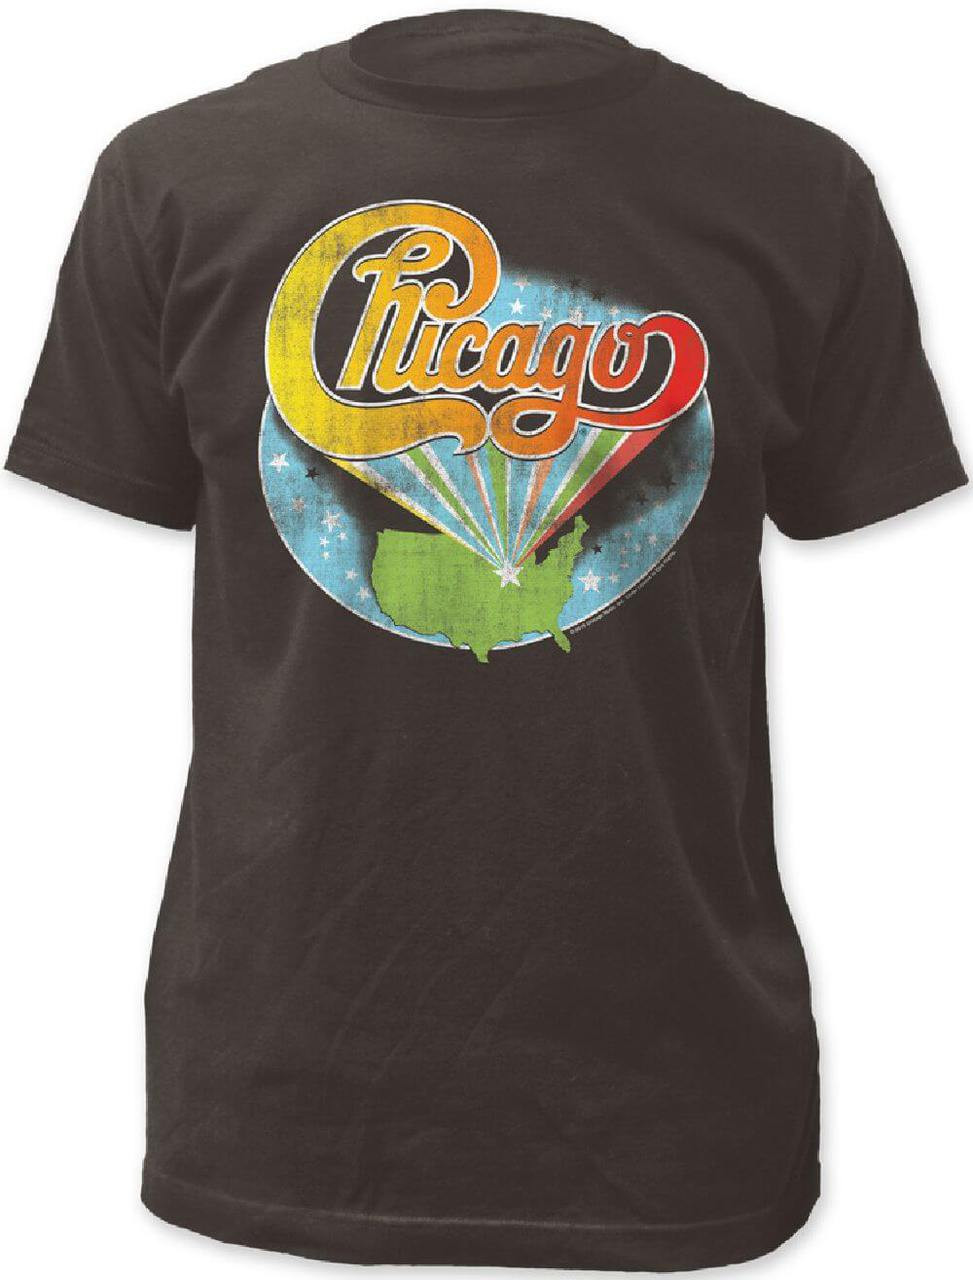 9d46110cae768d Chicago Rock Band Logo with United States Background Men's Black Vintage T- shirt